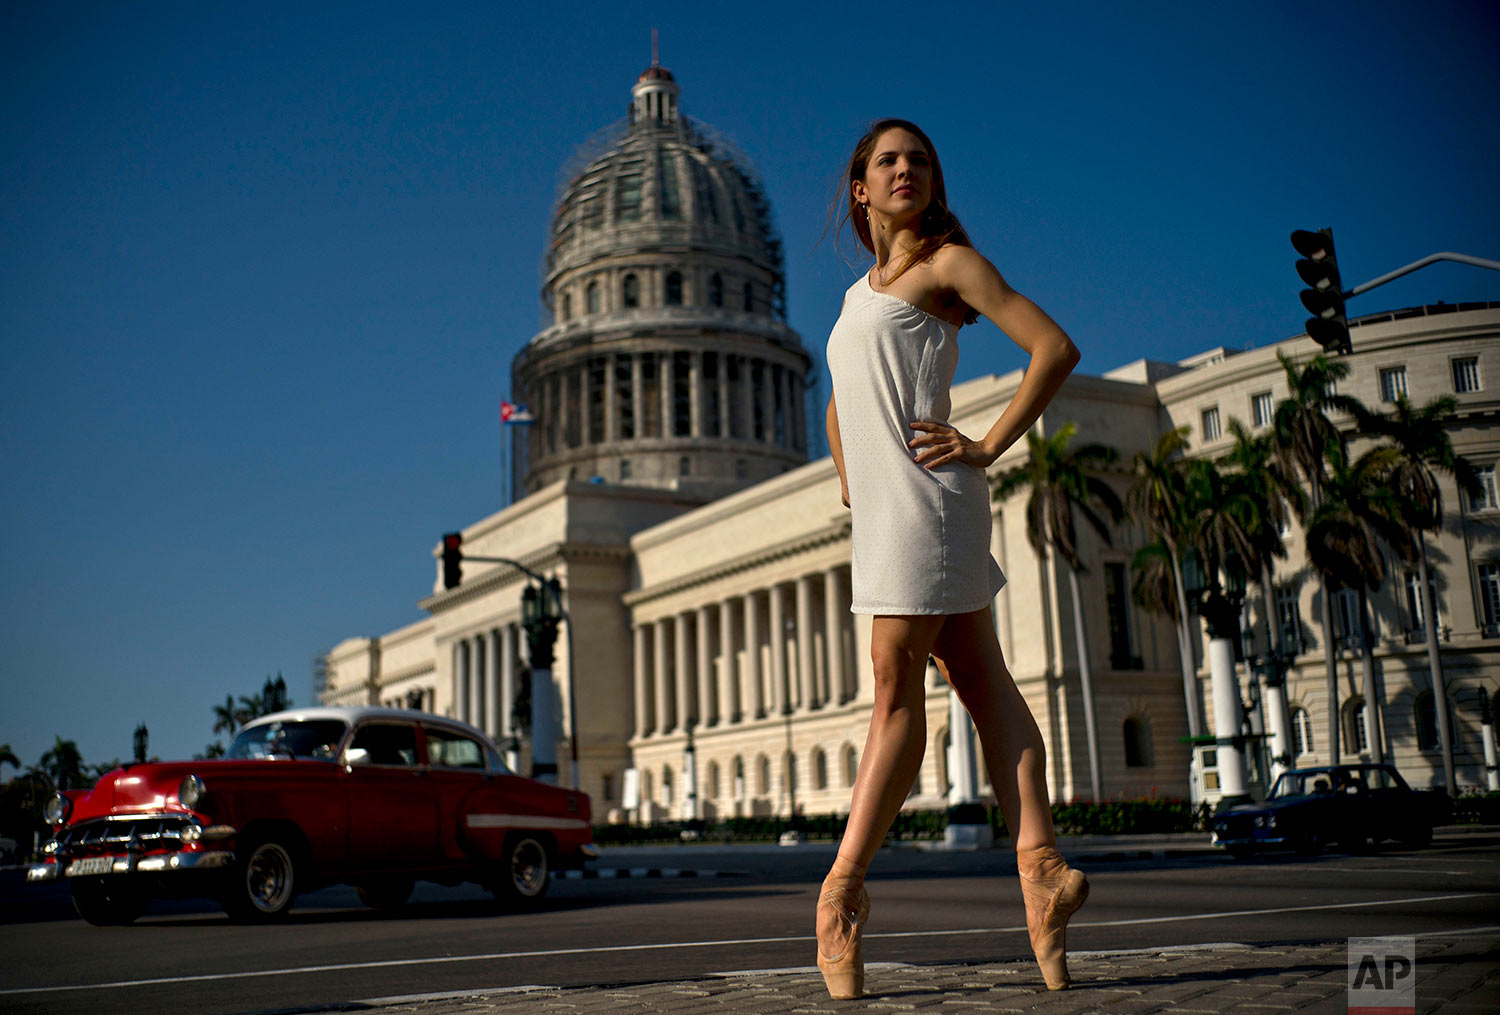 In this April 14, 2018 photo, National Ballet of Cuba dancer Daniela Gomez Perez stands on point as she poses outside the Capitol in Havana, Cuba. Gomez, who says Cubans love dancing, trusts the next generation of leaders will continue such traditions and that art will continue to be the engine of Cuban society. Gomez said she is proud to represent Cuba during a dance trip in May to Washington, Tampa and Chicago, and that the Cuban state has always supported dance. (AP Photo/Ramon Espinosa)